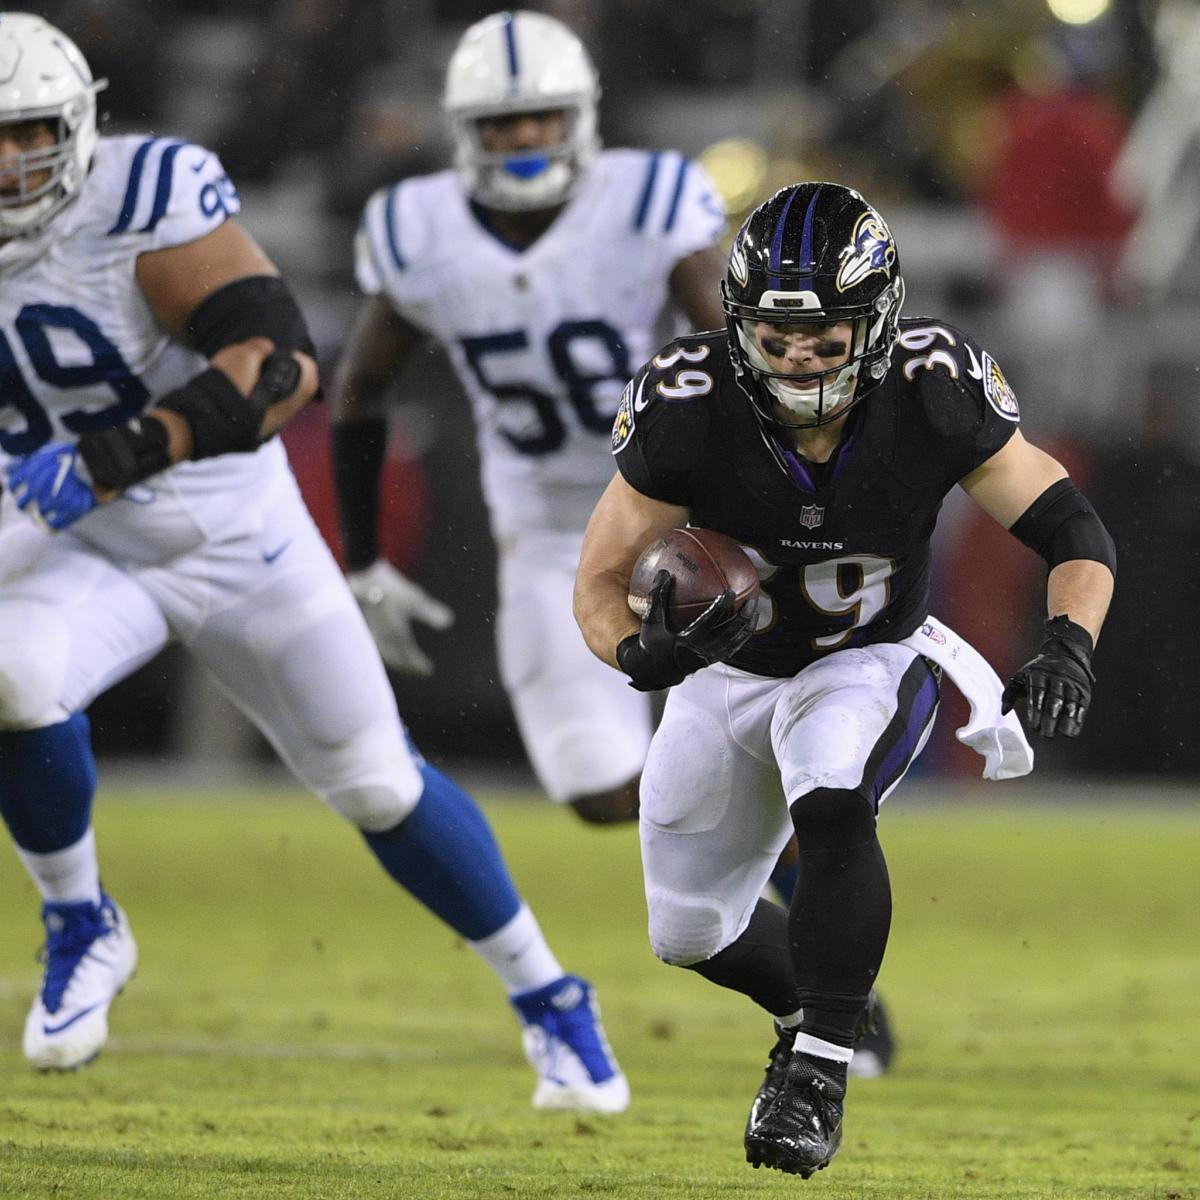 2832fd63d Danny Woodhead Retires from NFL After 10-Year Career